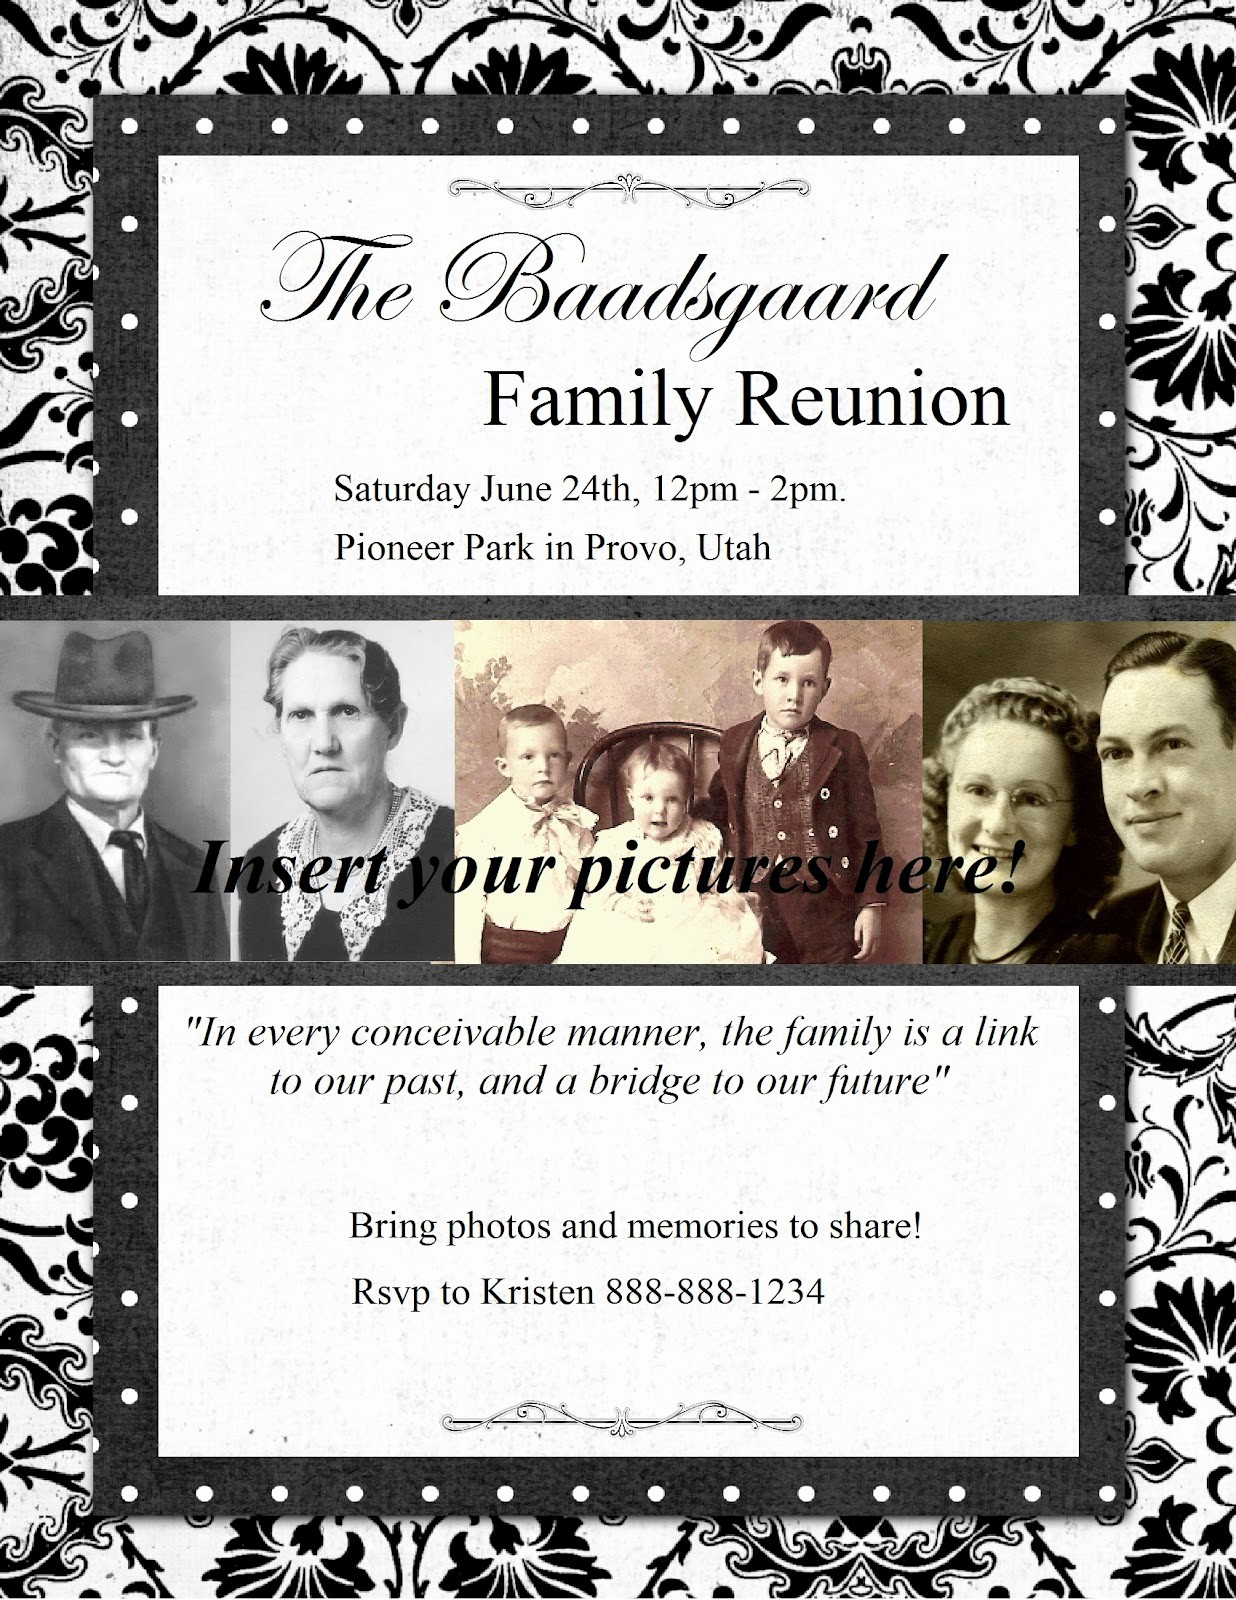 Free Family Reunion Flyers Templates Luxury Heritage Collector Storybook Family Reunion Flyers